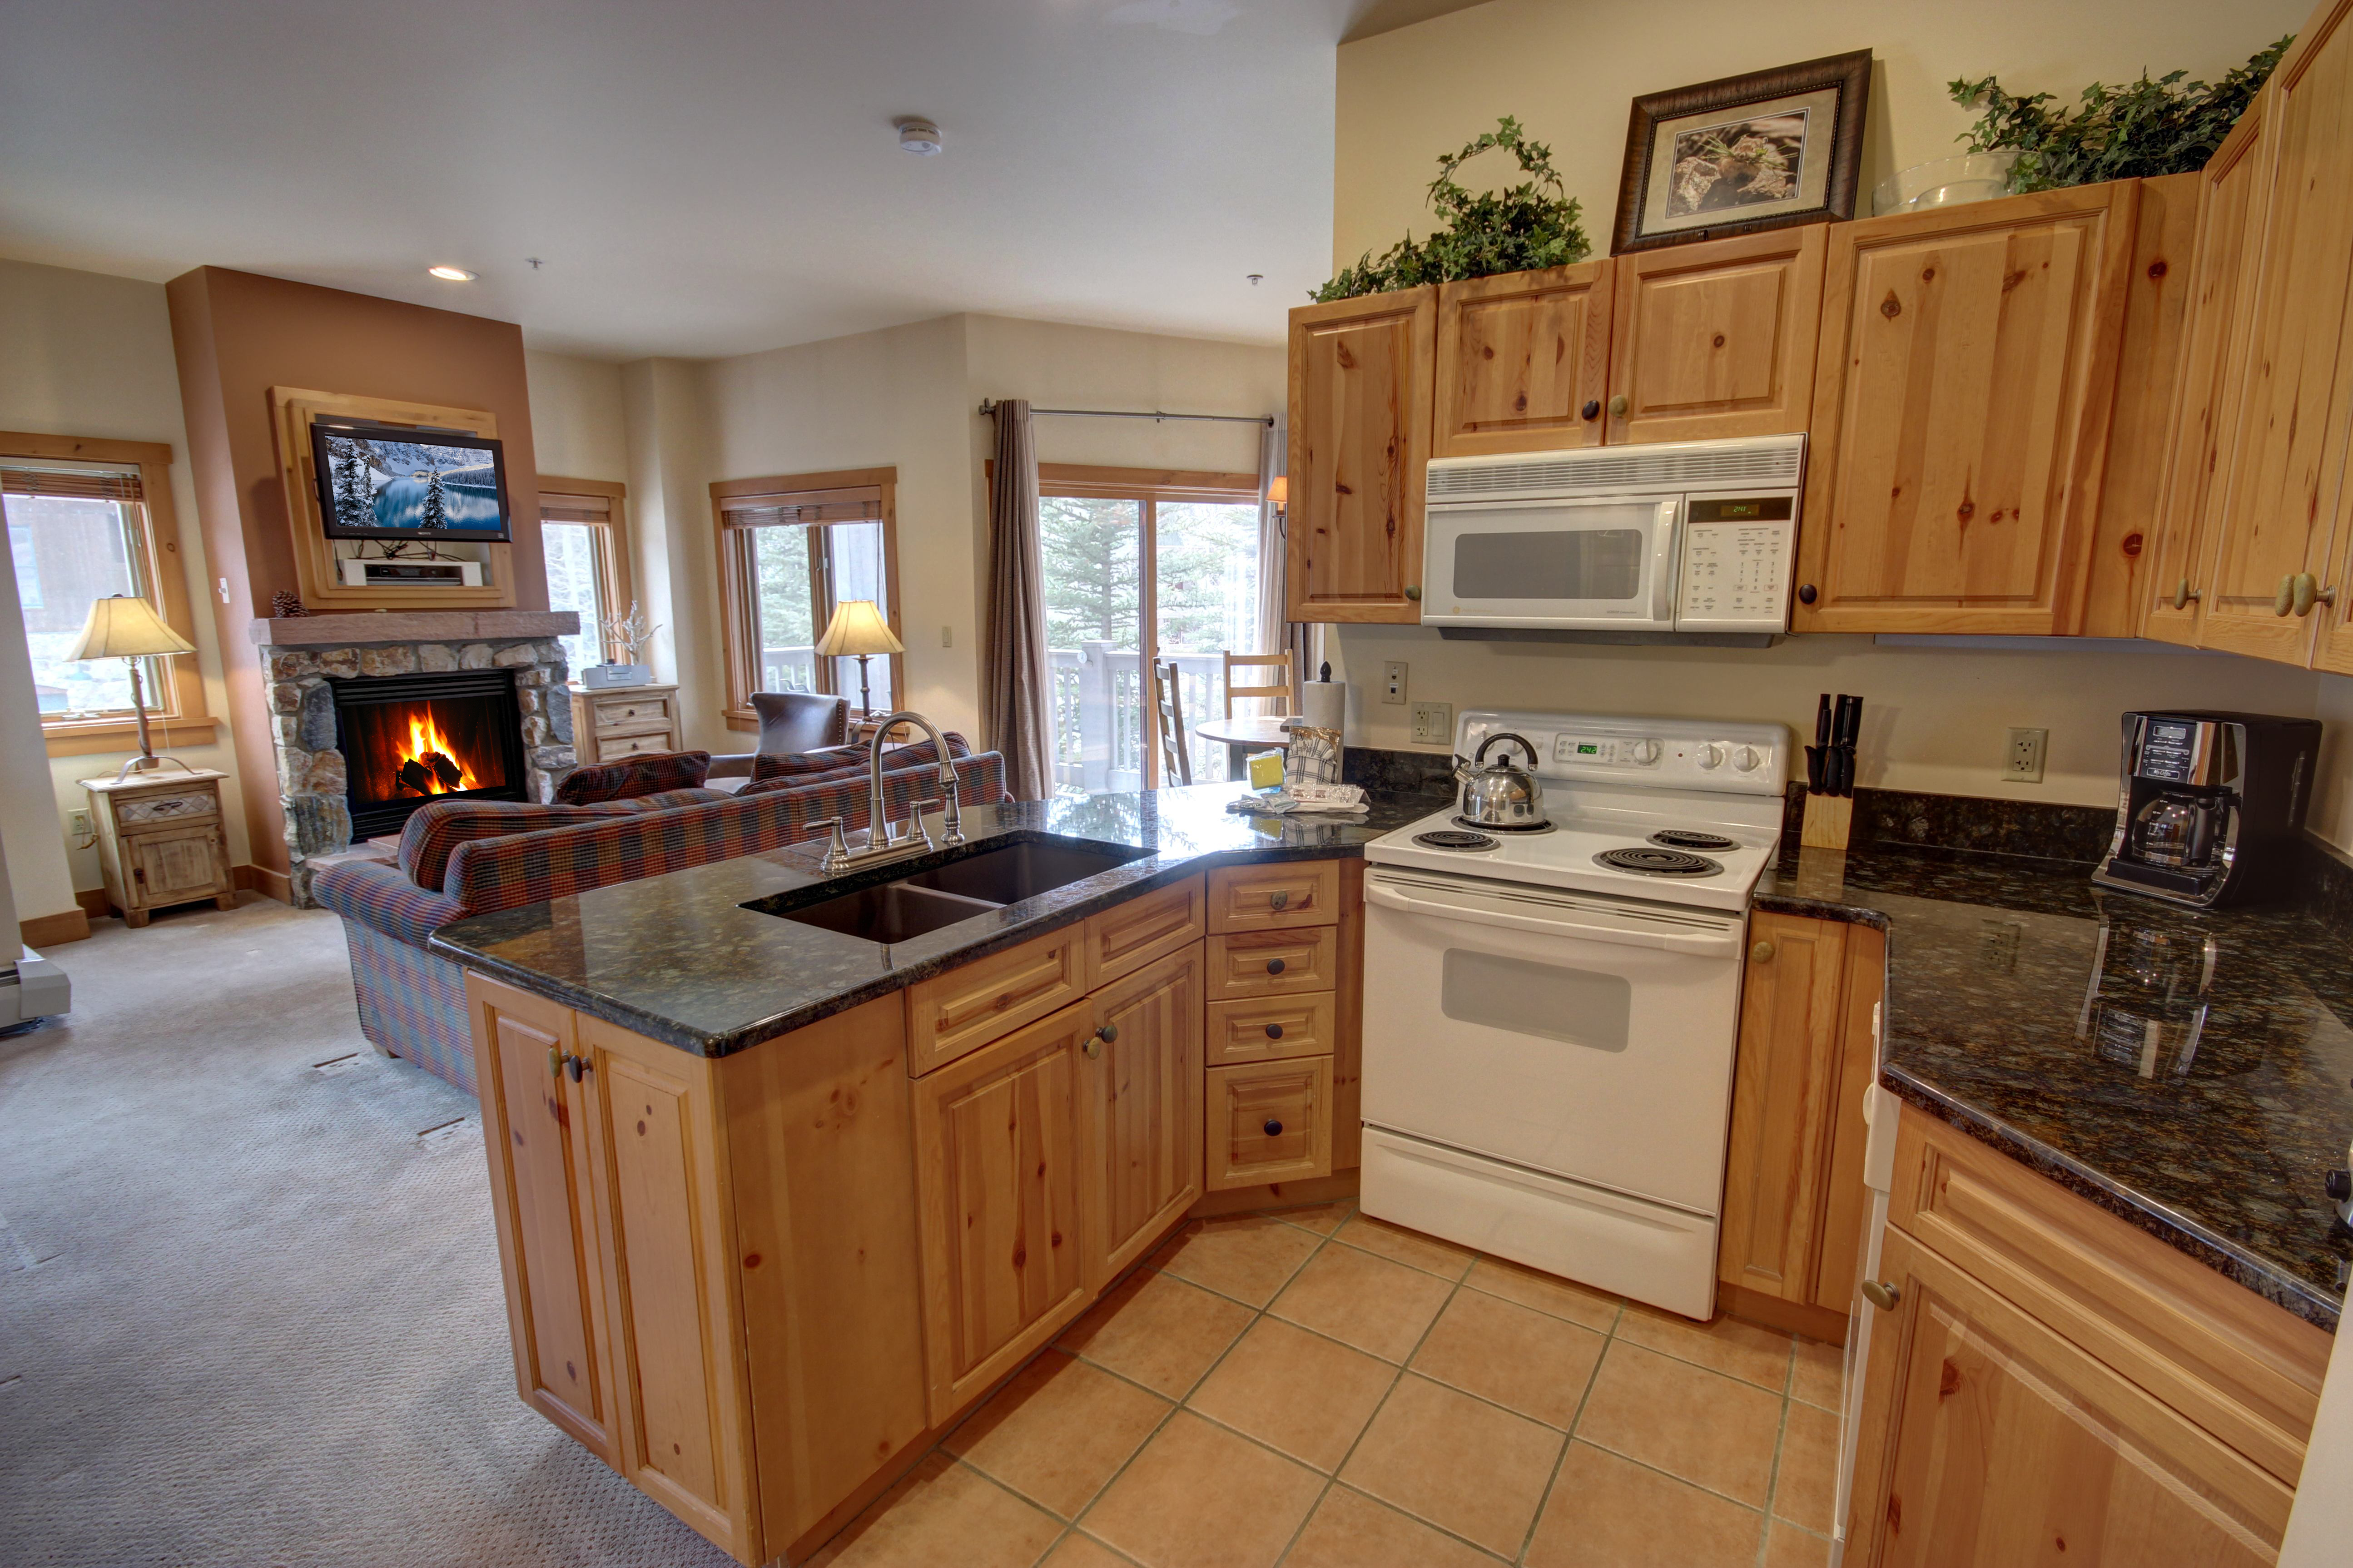 Kitchen perfect for making all your favorite foods